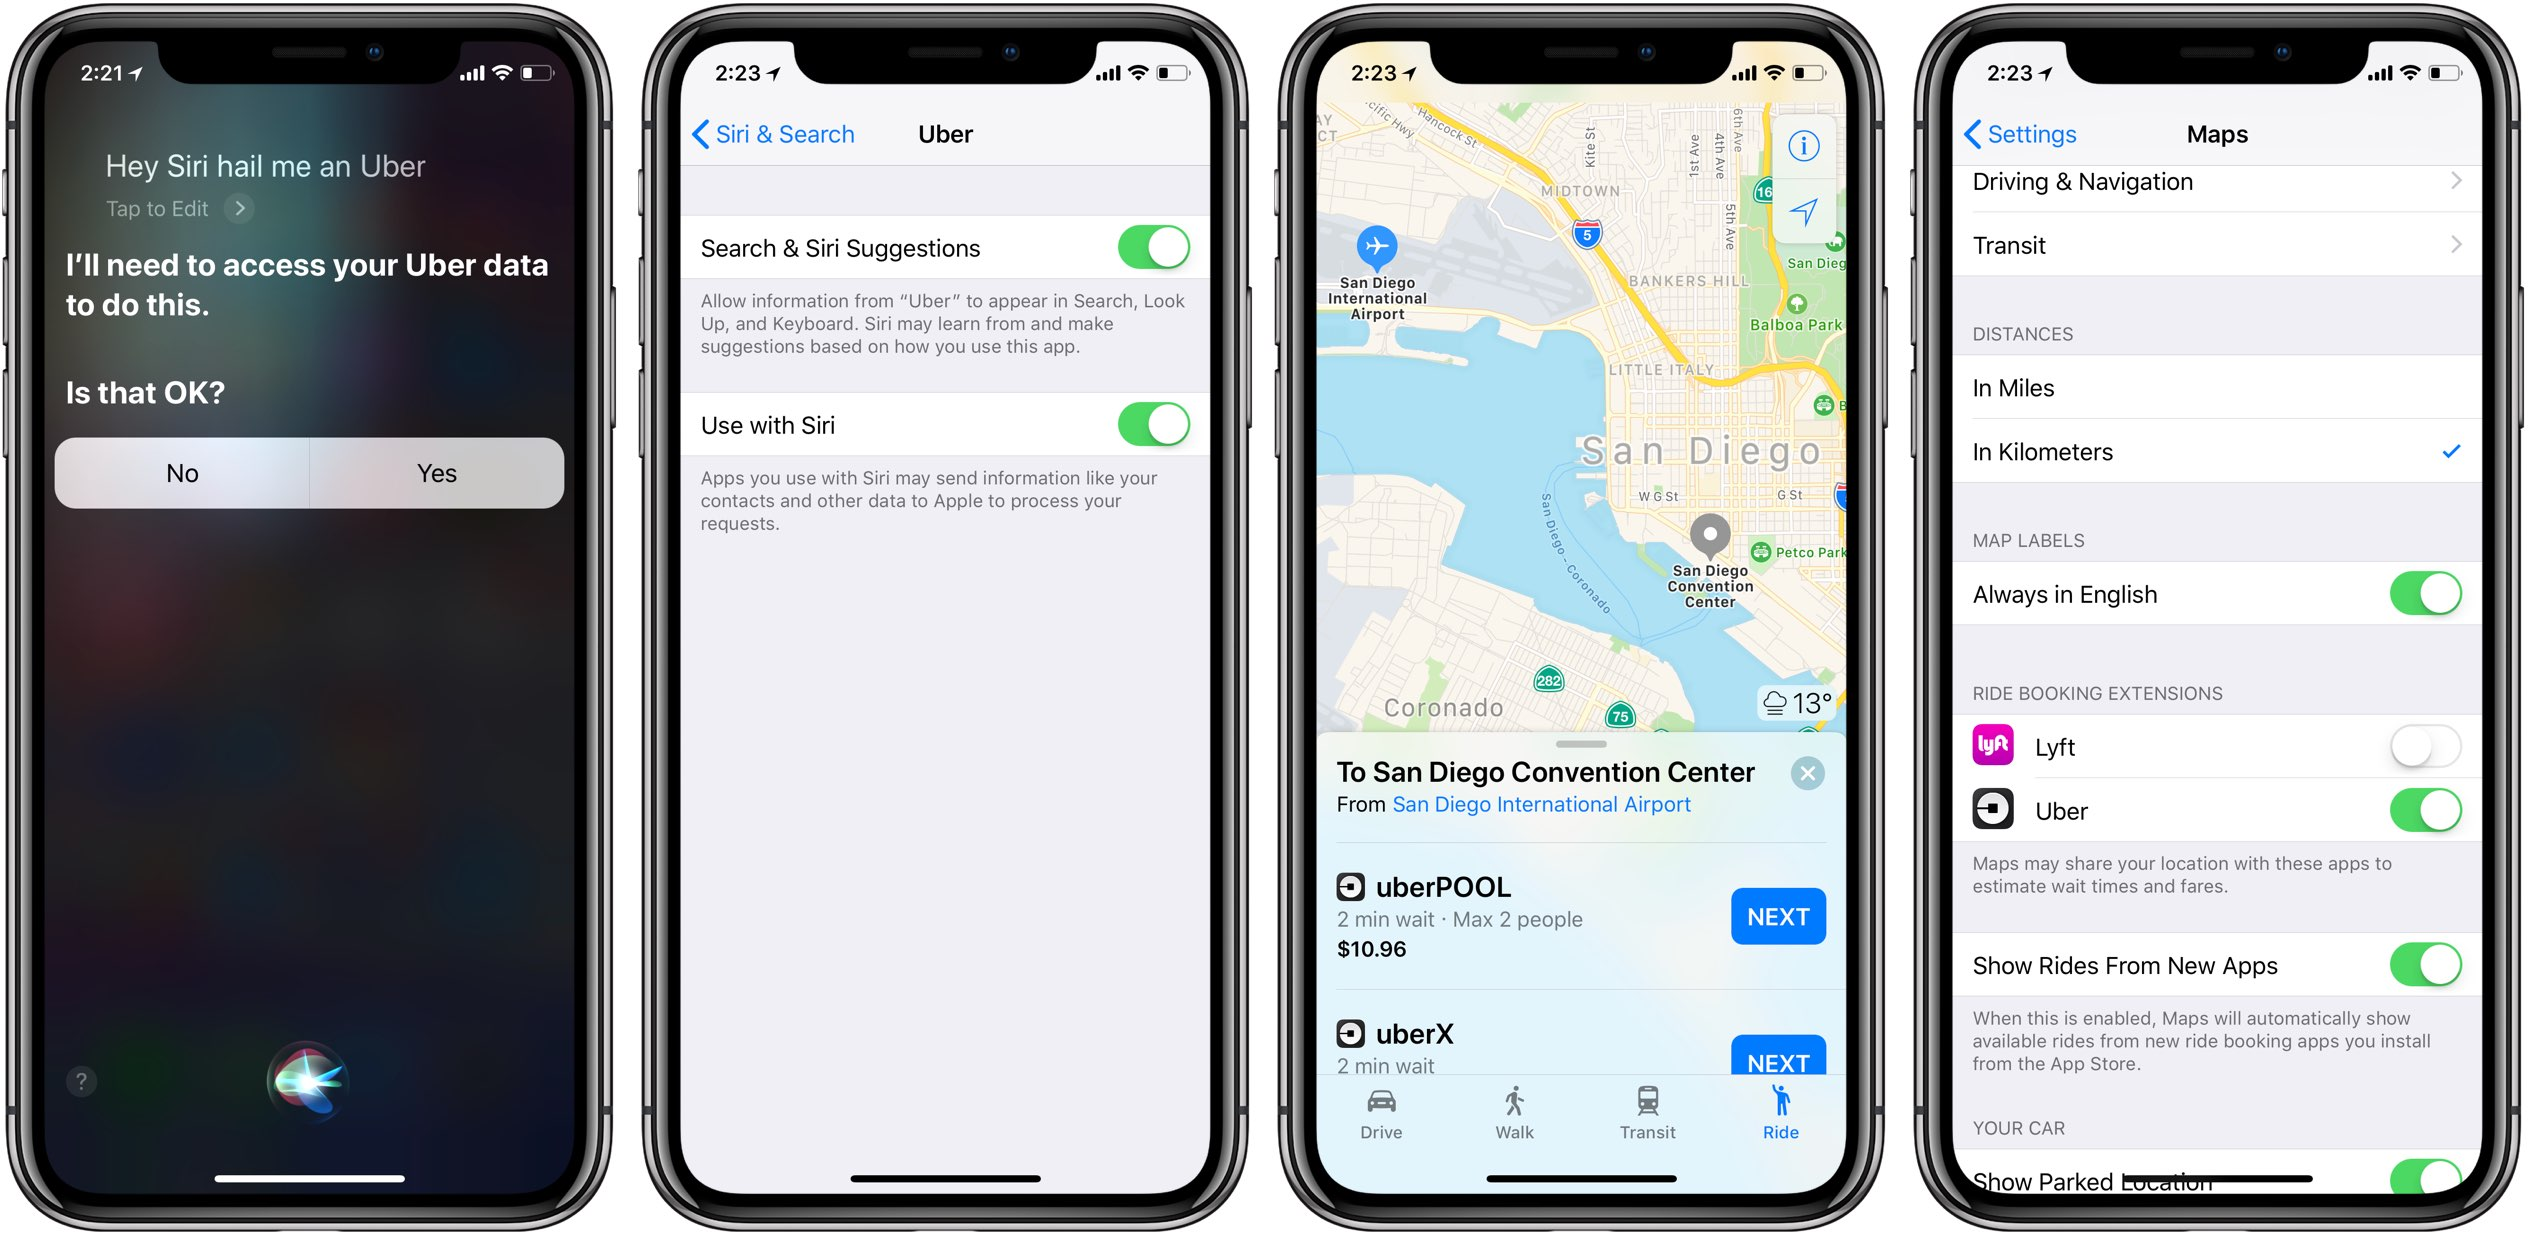 How To Download Uber App On Iphone